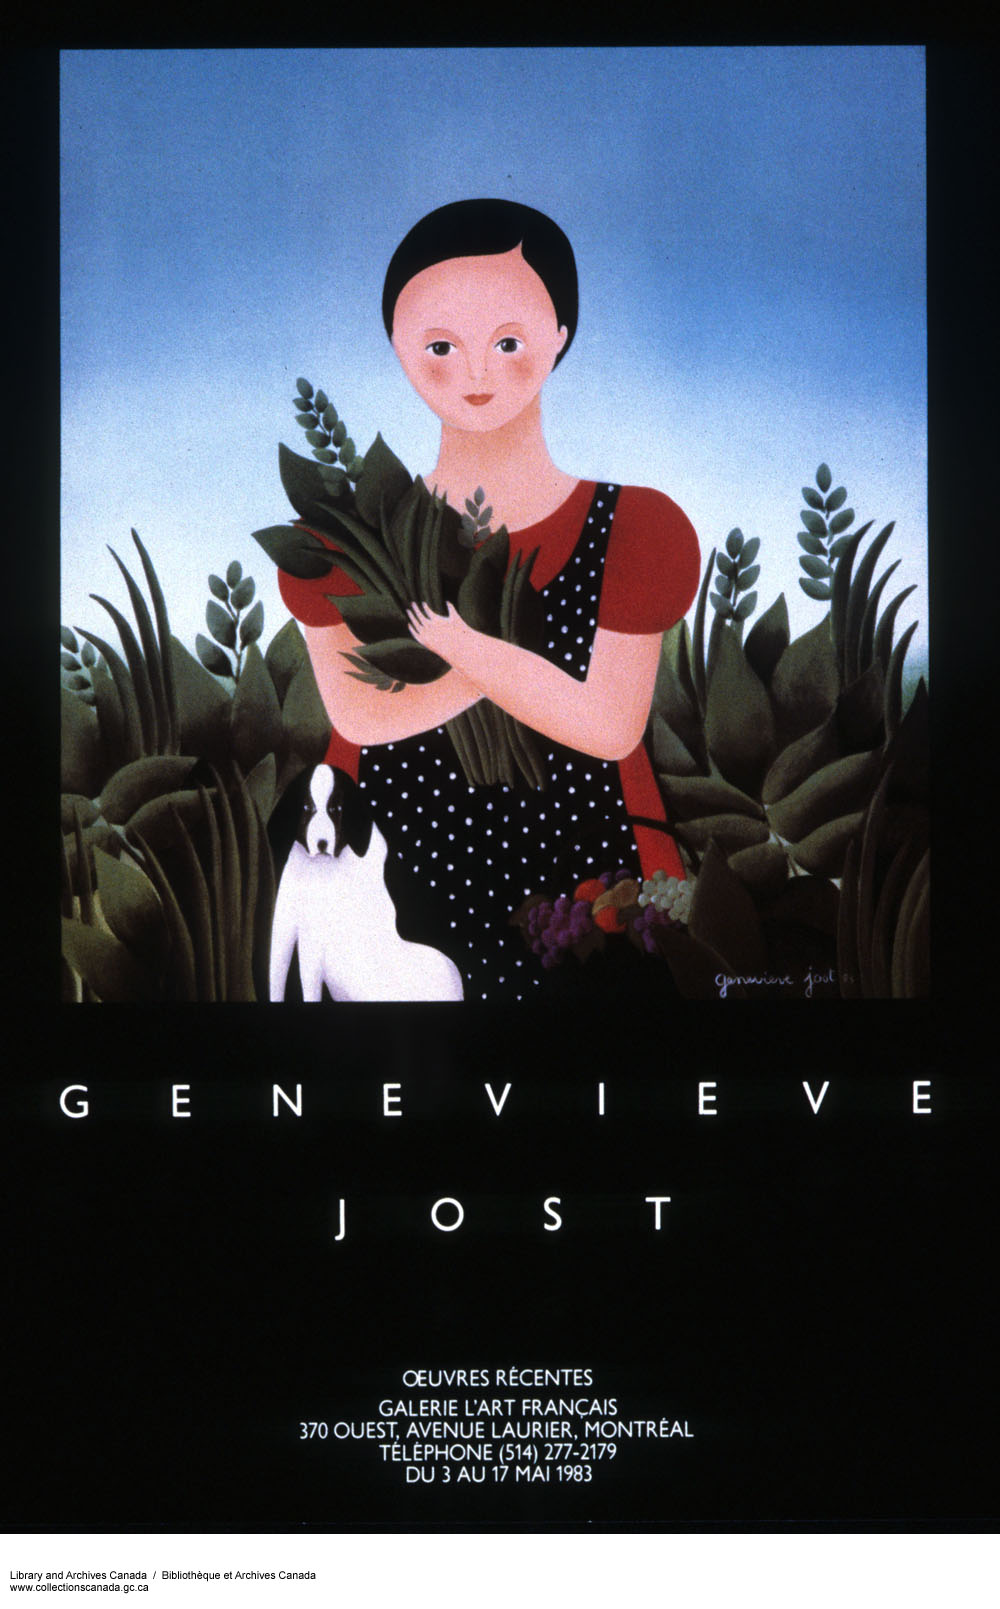 Geneviève Jost, Oeuvres récentes :  exhibition presented at the Galerie L'art français in 1983. (item 1)